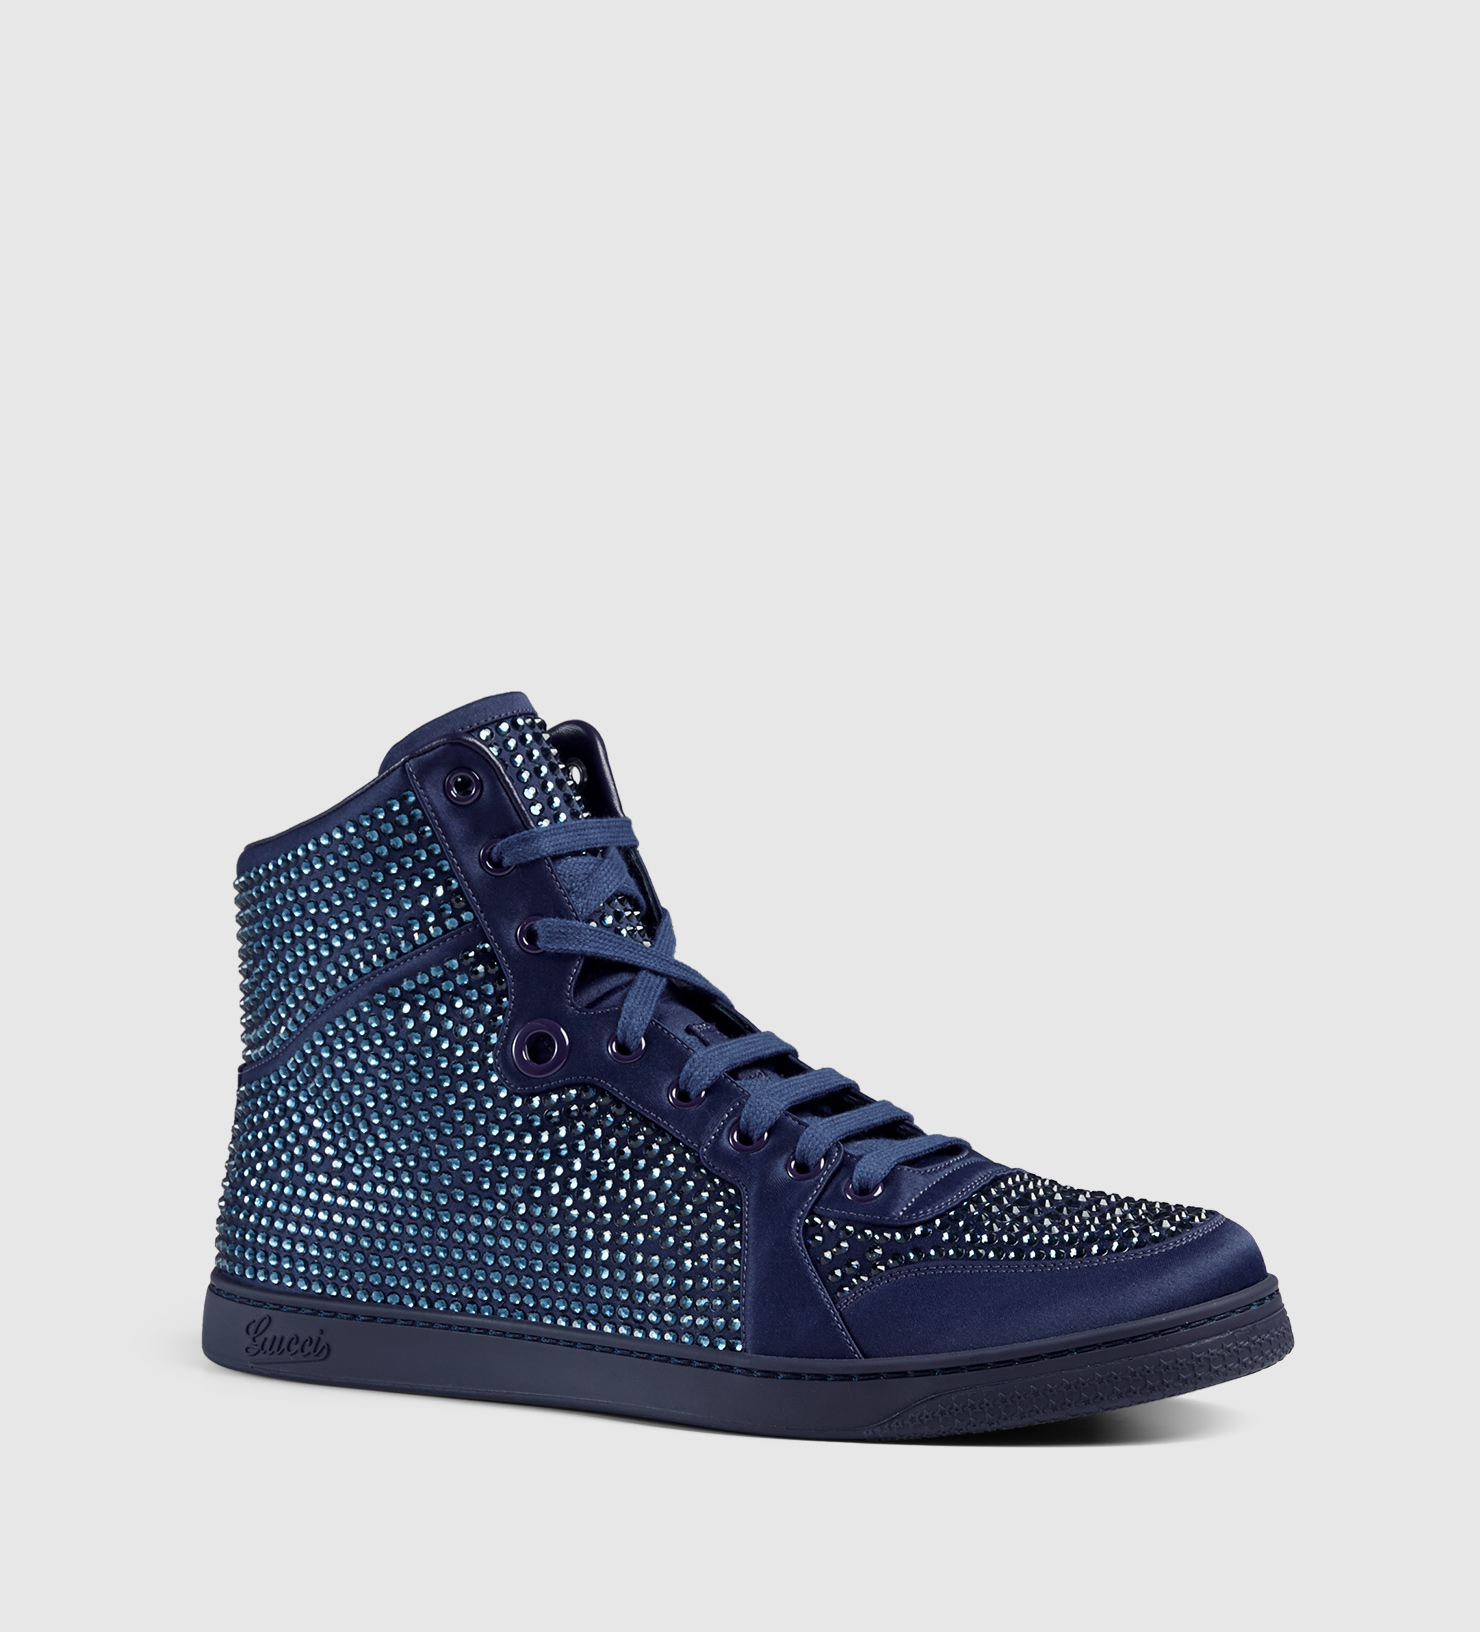 Lyst Gucci High Top Sneaker With Crystal Studs In Blue